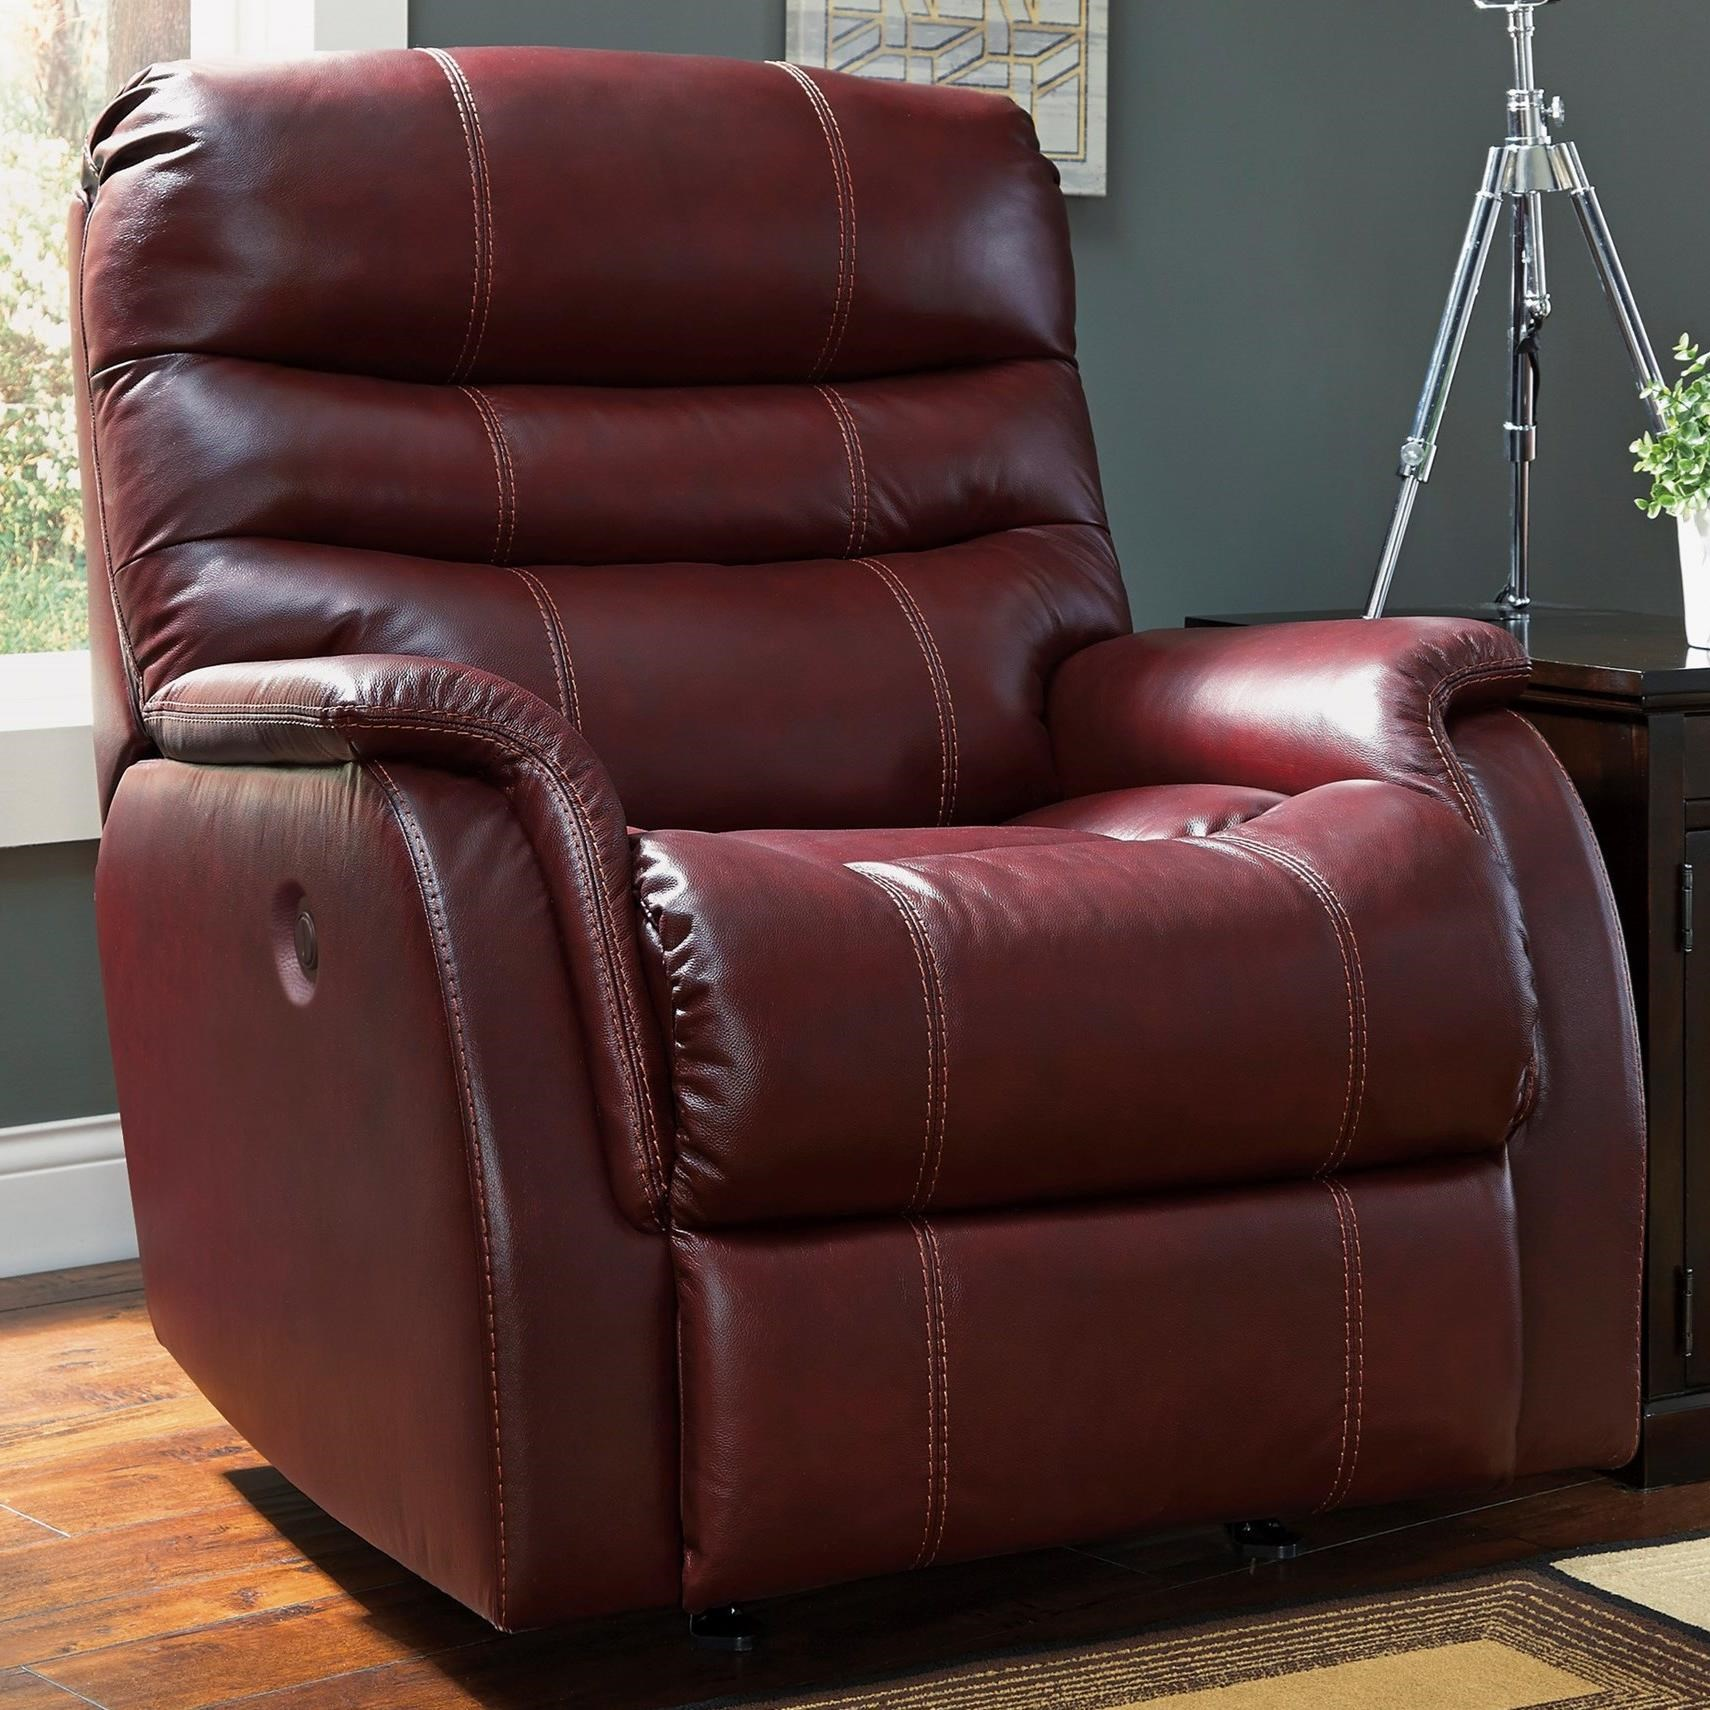 Signature Design by Ashley Bridger Power Rocker Recliner - Item Number: 3930198